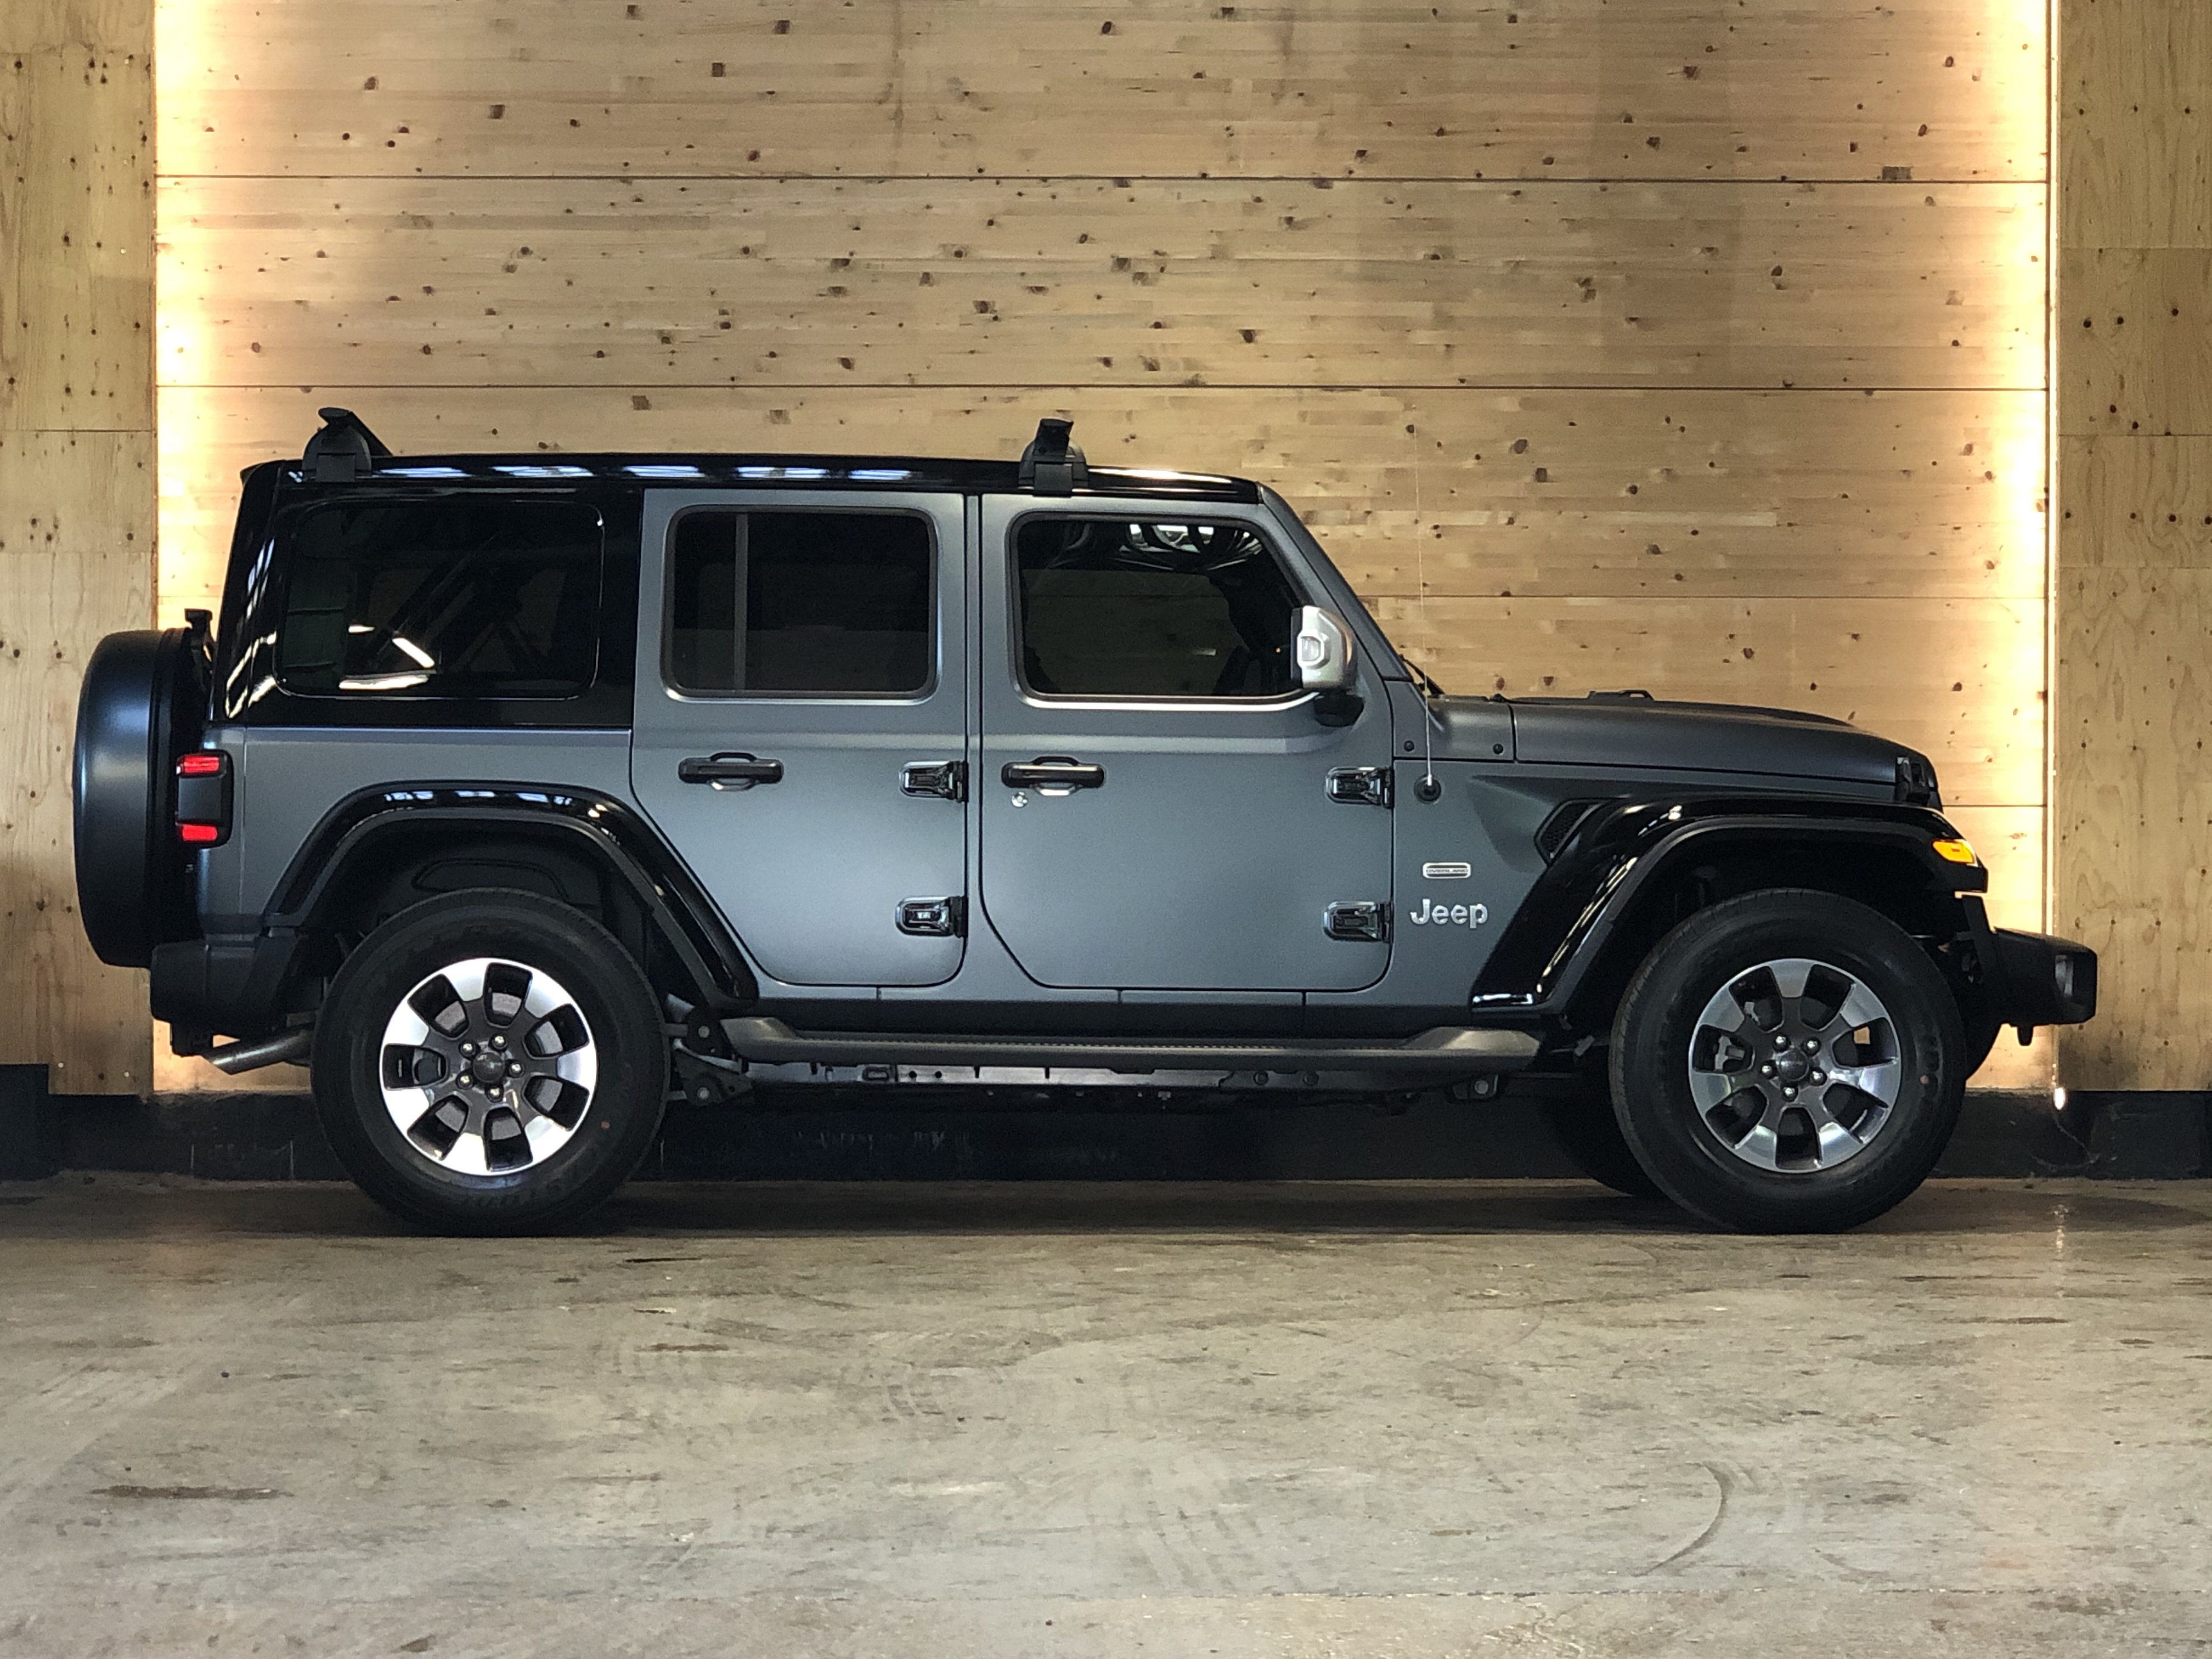 Jeep Wrangler Unlimited 2.0T Overland